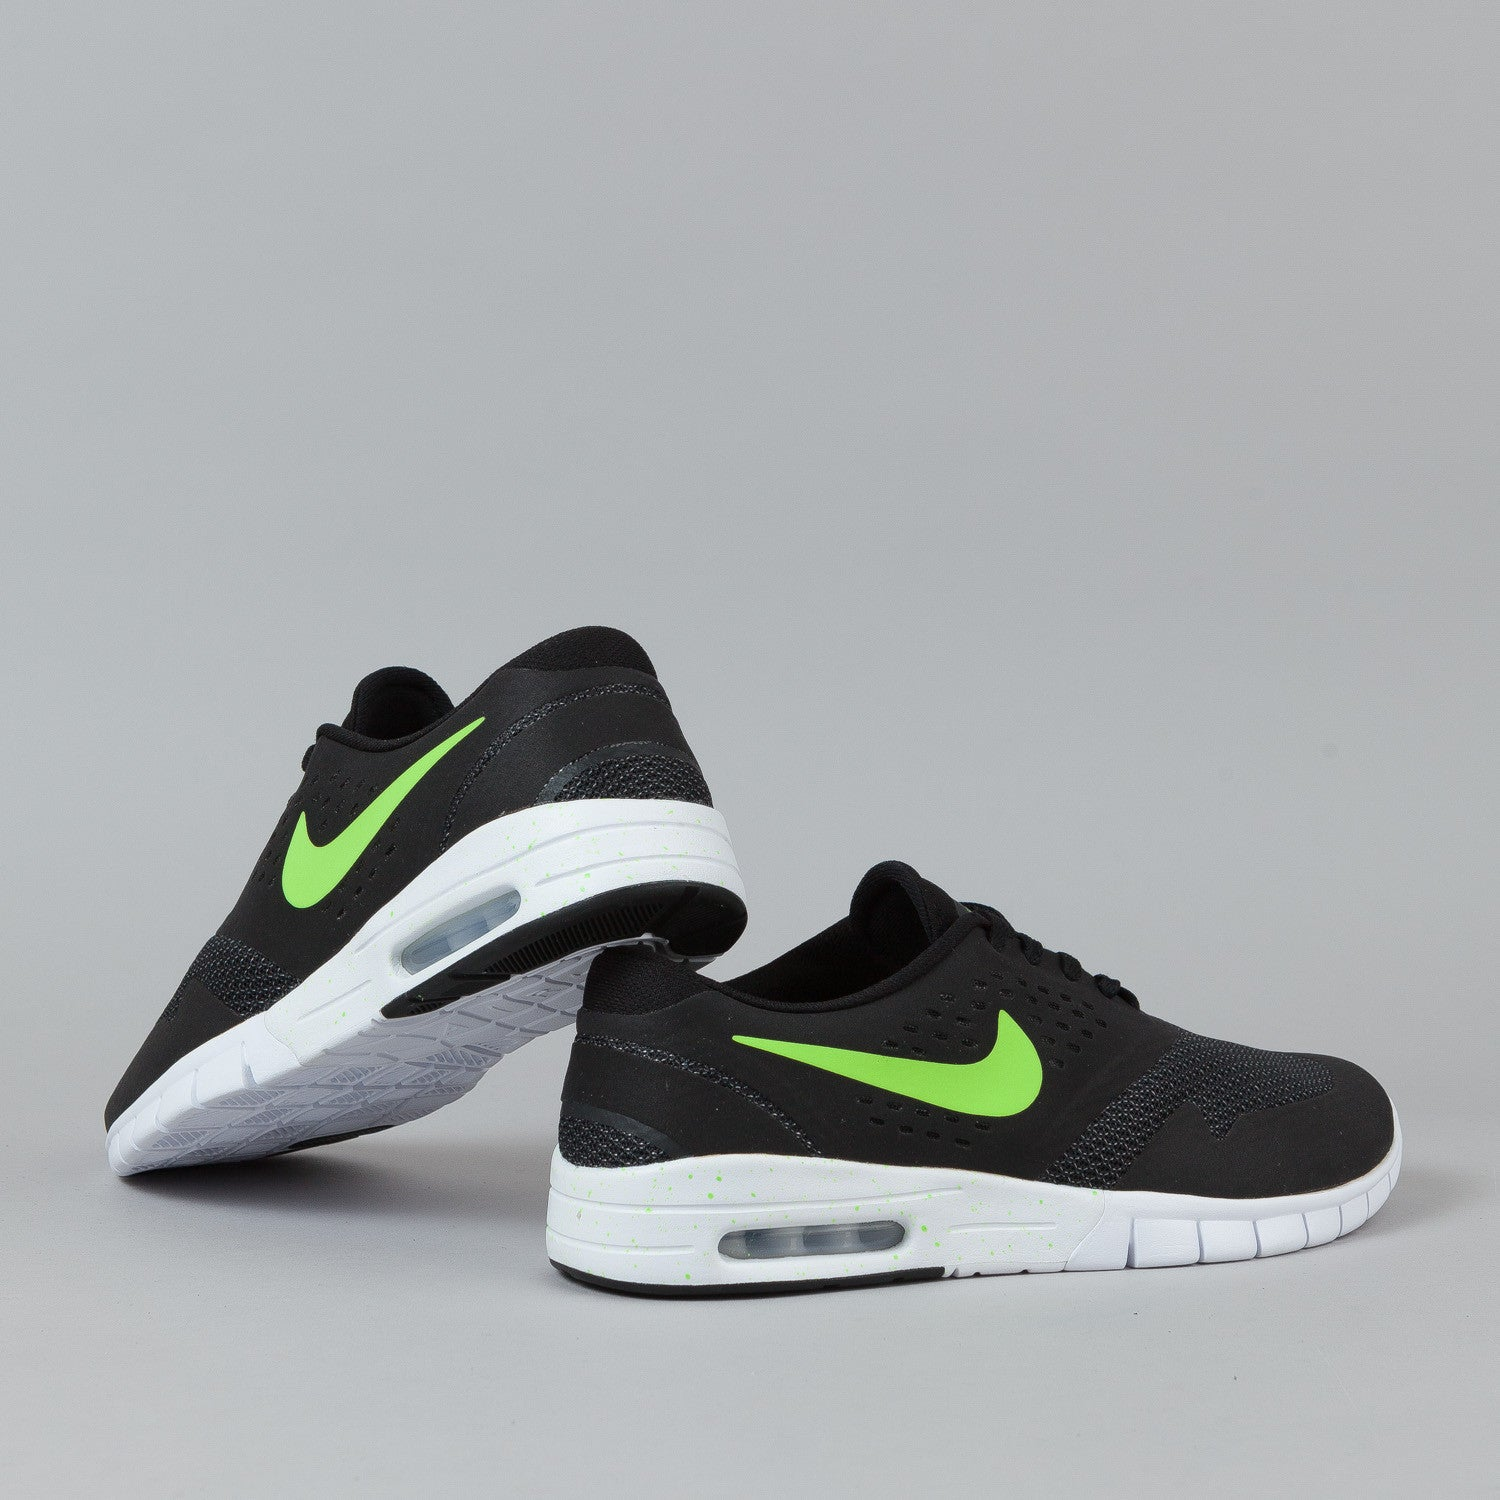 ... Nike SB Eric Koston 2 Max Shoes Black / Flash Lime - White ...